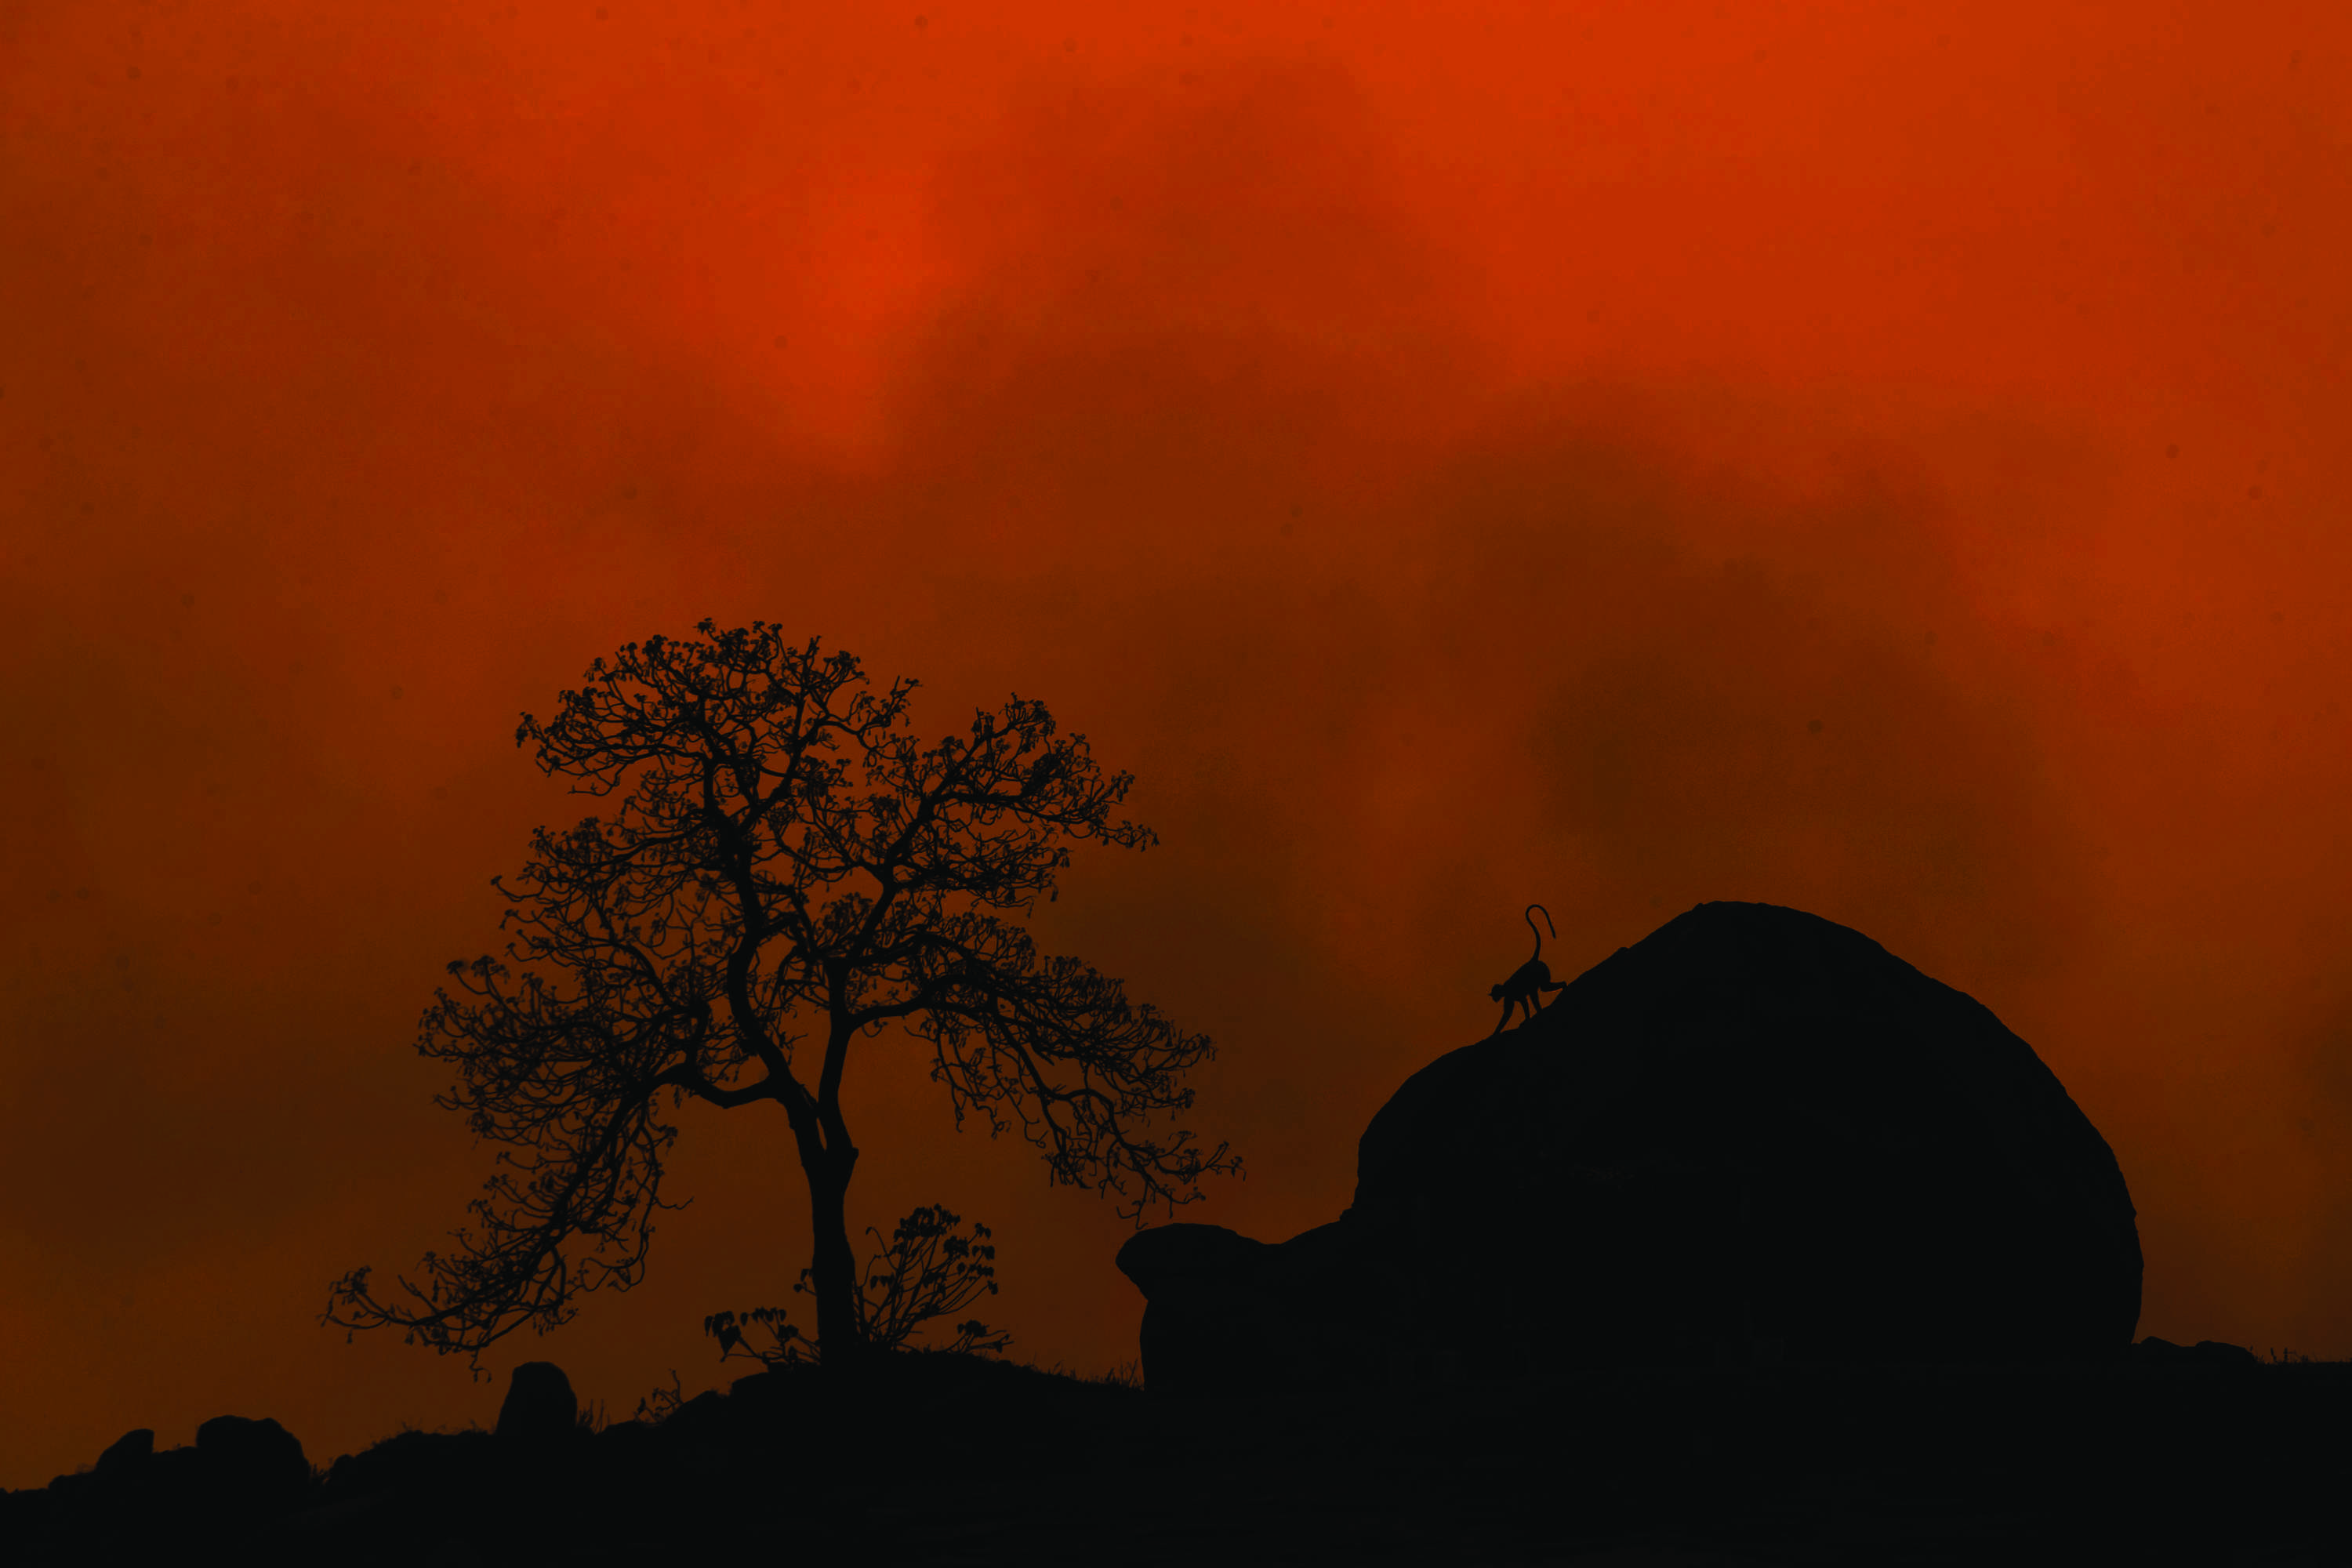 """'Twilight Zone' by Arun Kumar NK frames a langur against the setting sun in Hospet, Karnataka. """"Not far from the rich World Heritage Site of Hampi, a quiet afternoon gave way to a spectacular evening,"""" said the note. """"The filigreed reach of the tree, the mammoth boulder, the casual loop of the langur's tail... this gentle image exudes ease and quietude."""""""